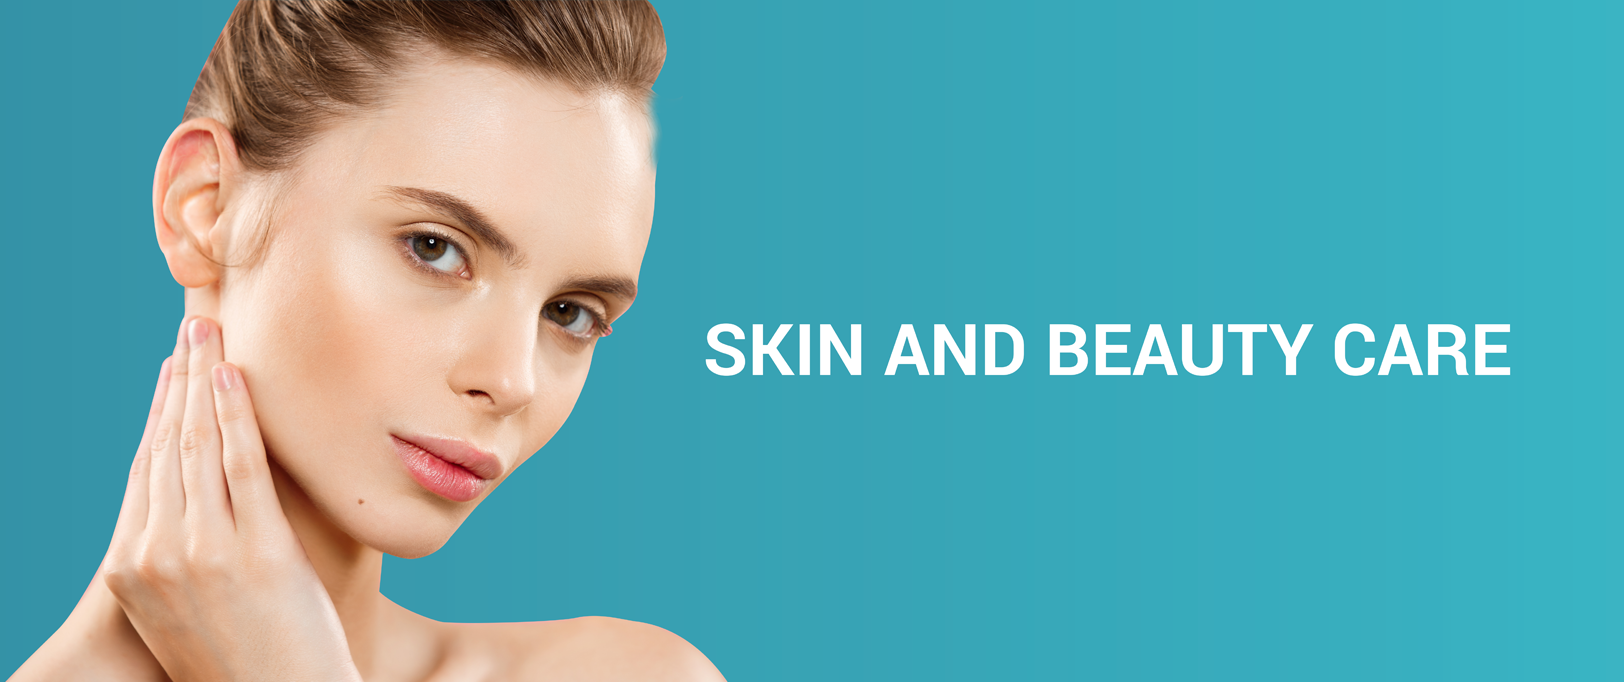 Skin & Beauty Care Department